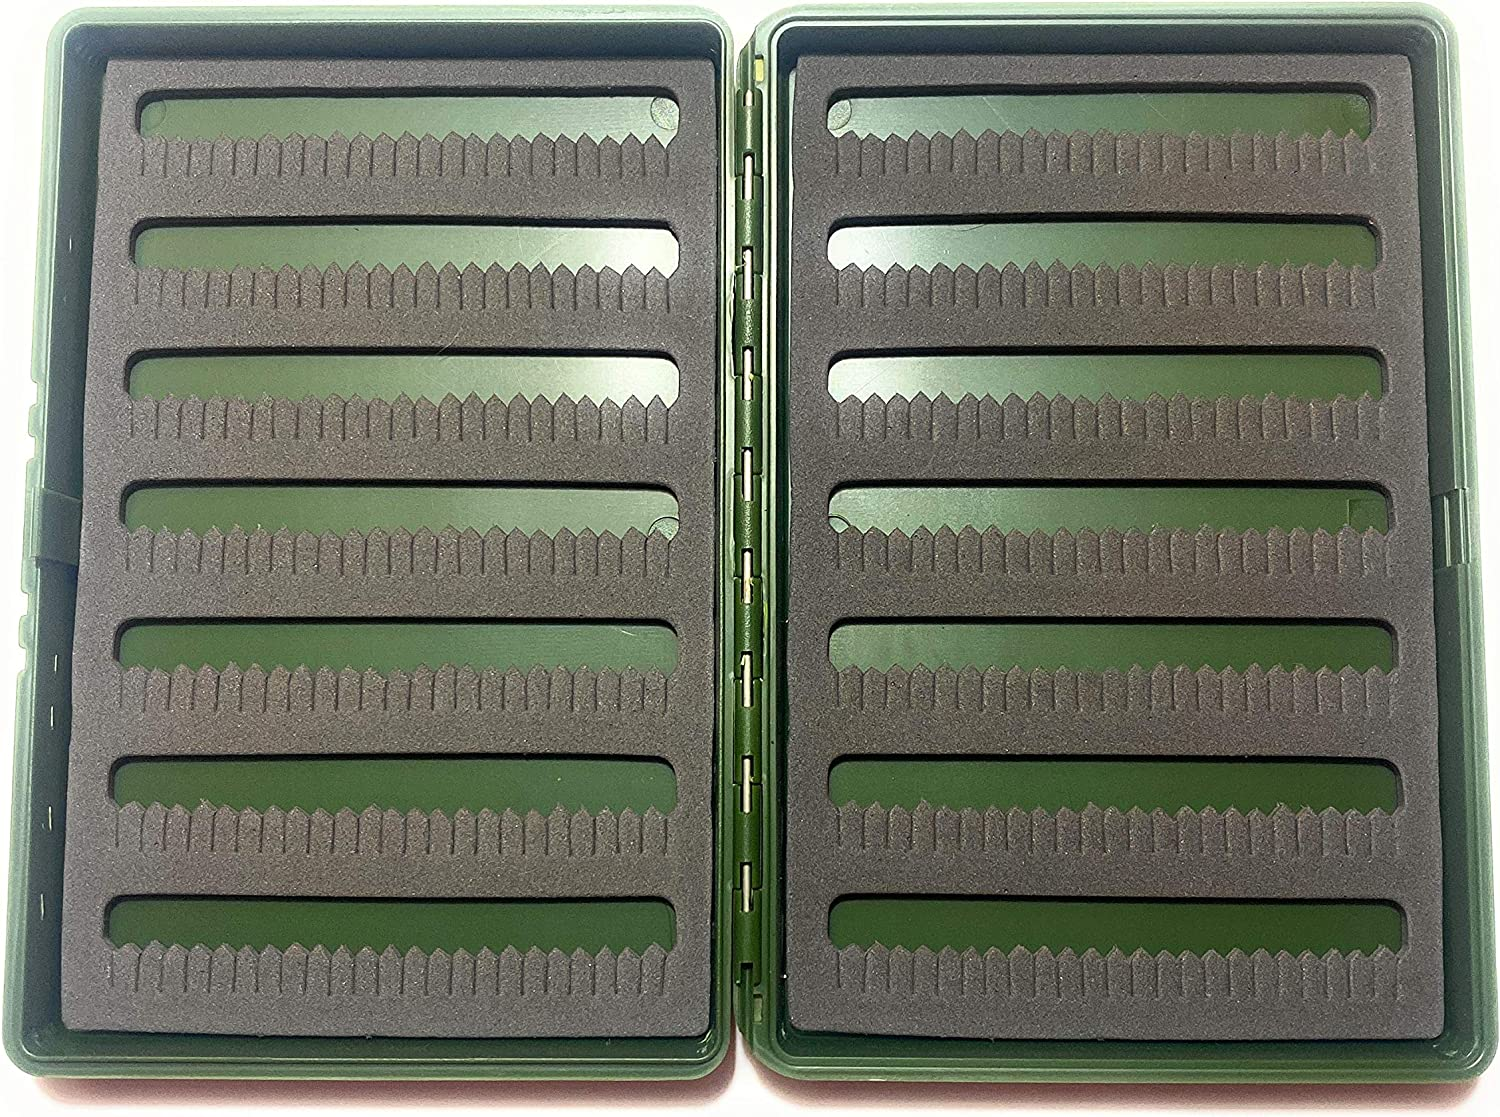 Lazy river road outfitters Large 336 Capacity Fly Box